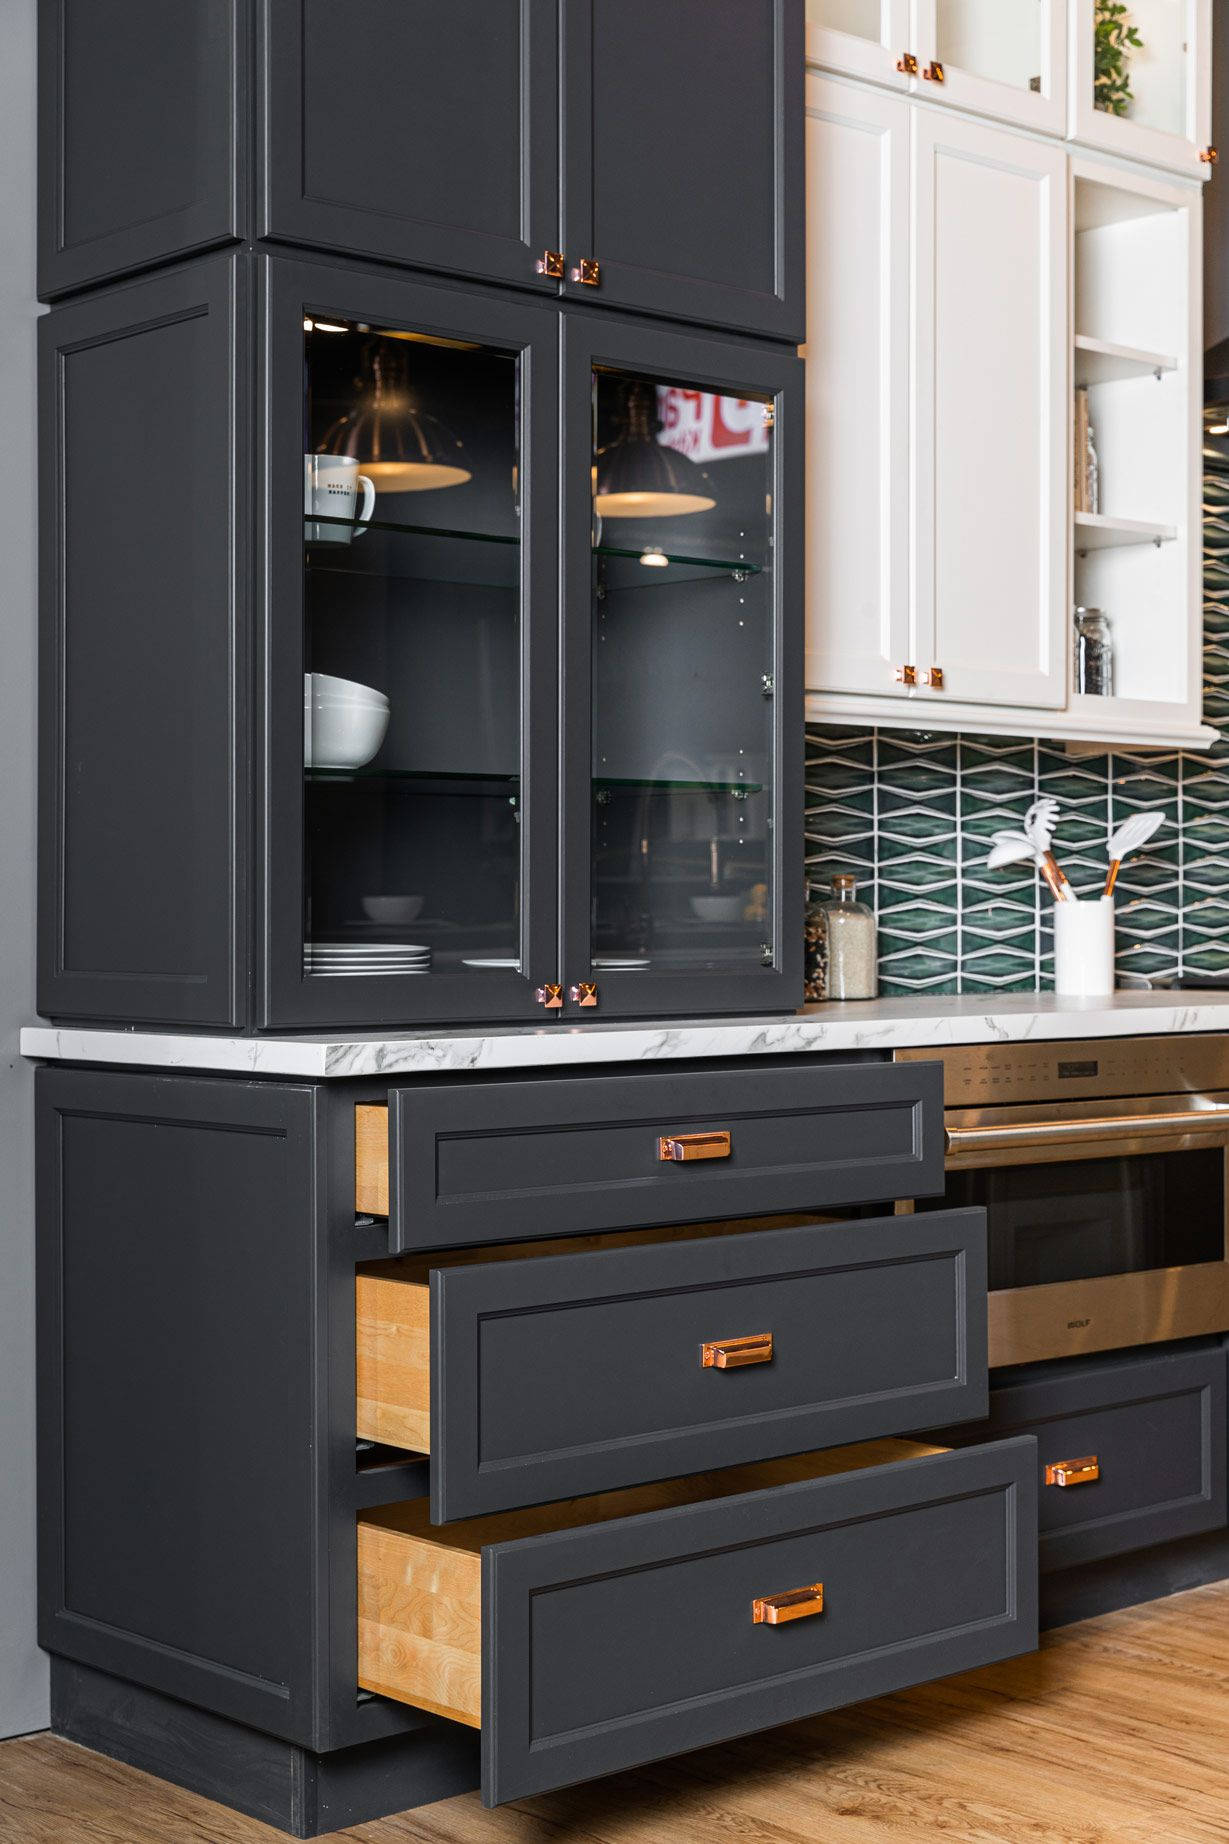 e2 charcoal | j&k cabinetry in 2020 | discount kitchen